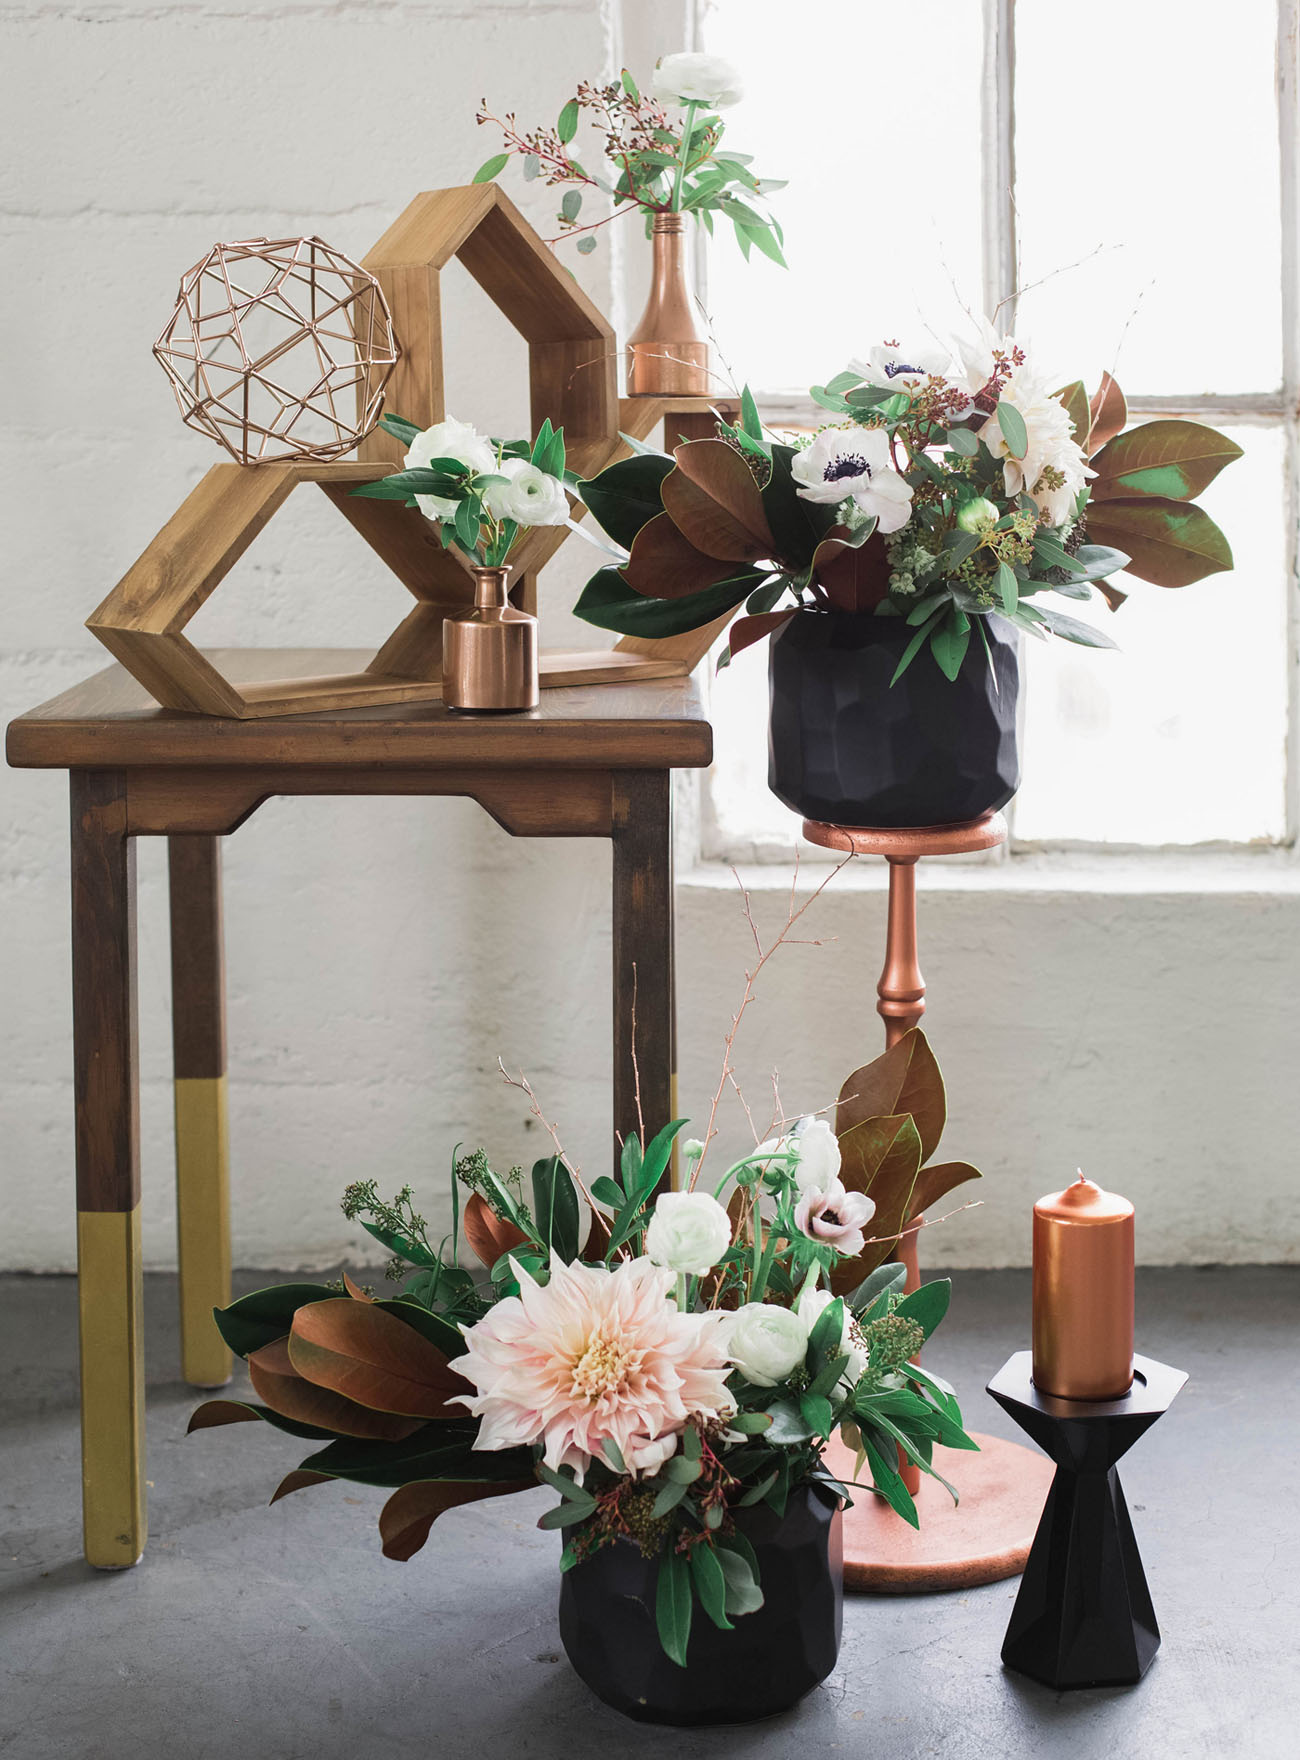 Industrial Chic - Large country houses and fairy-tale settings are giving way this year to more industrial venues accented with geometric metallic to complete that totally on-trend vintage style. Perspex and glass are also high on the fashion agenda, so if you can find an industrial greenhouse, you'll be ticking all the hot boxes! Copper has moved beyond the kitchen and into weddings. Copper fits nicely with the industrial vibe – think lamps, tables, chairs, place names etc. – all of which sets the scene beautifully for an autumnal palette. And, instead of bunting, we see photo montages or fabrics, this year's statement wall art is neon, so choose your design early, you can create your own bespoke neon here!